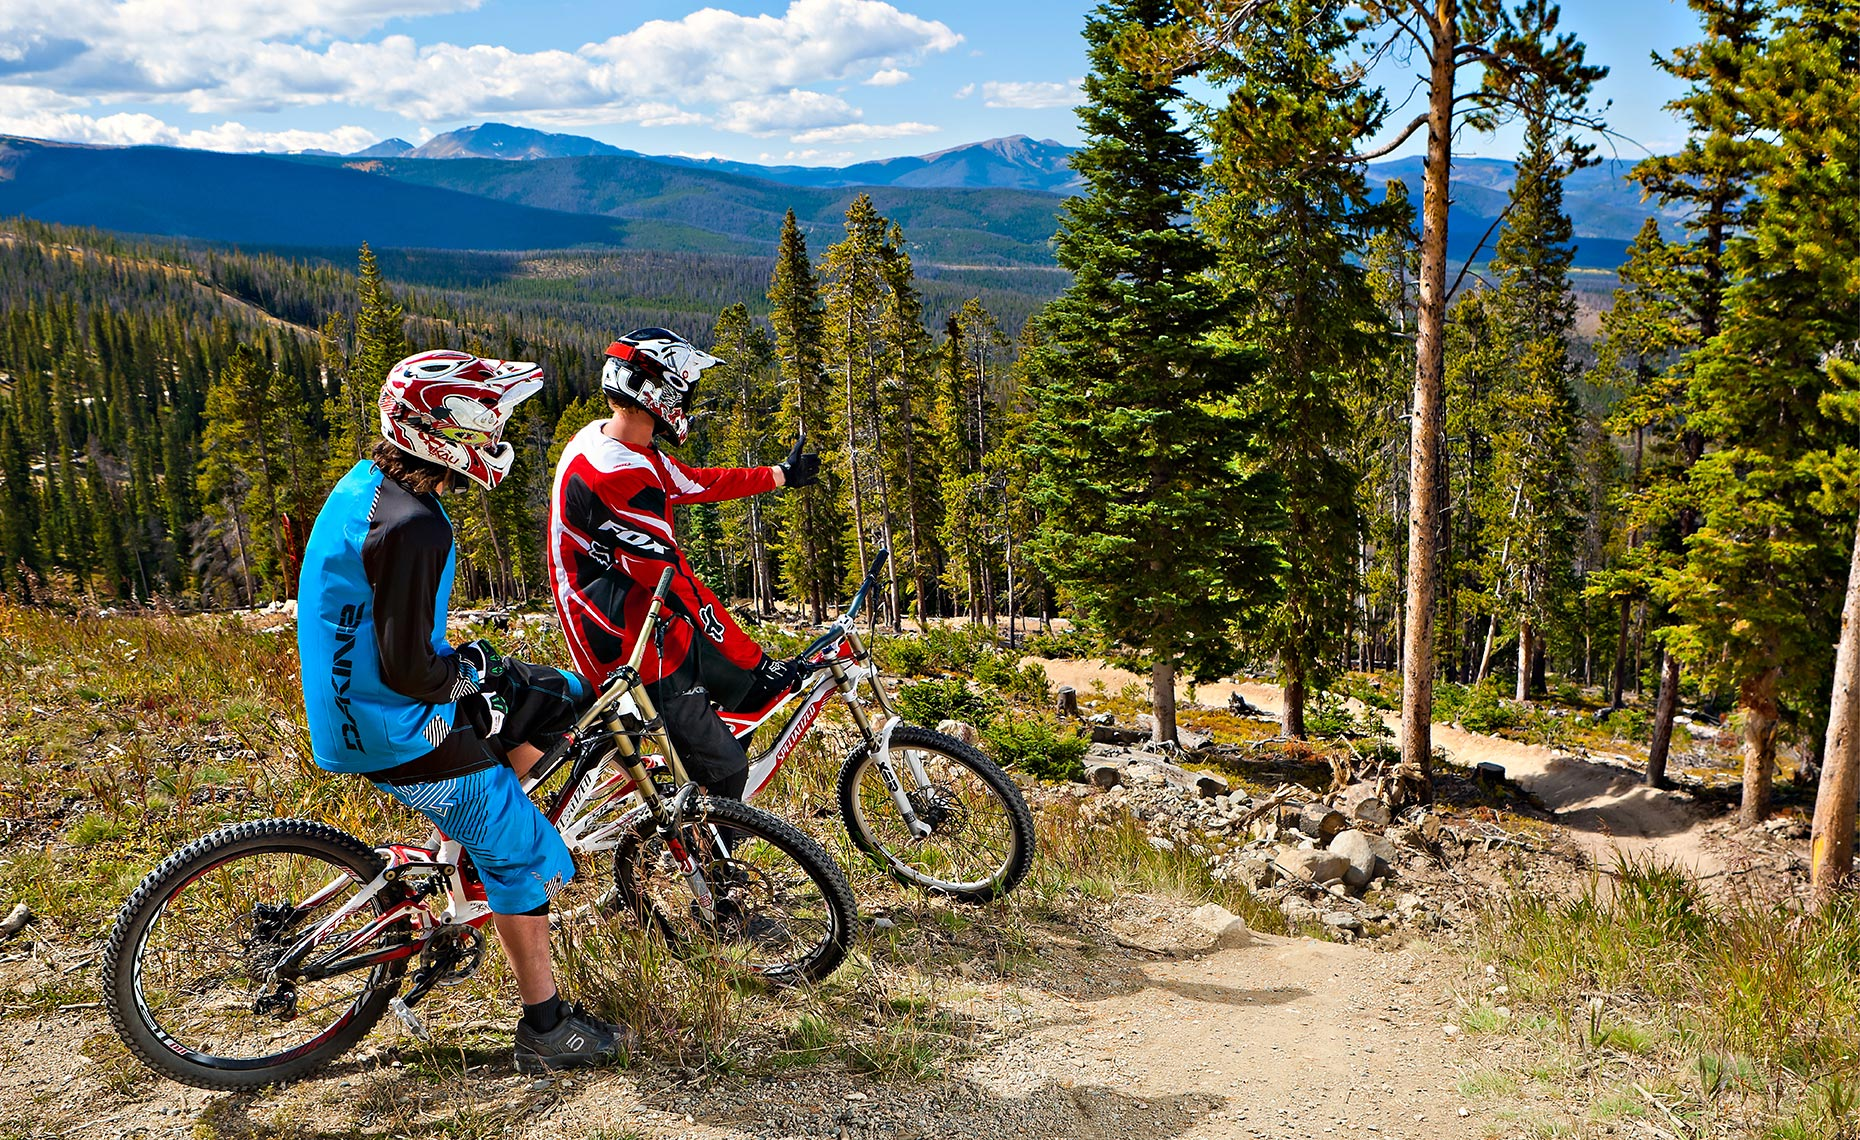 01_Andrew McKee_Brendan_Newton_Winter_Park_Colorado_Trestle_Bike_Mountain_Biking_Chris_Wellhausen_Photography.JPG